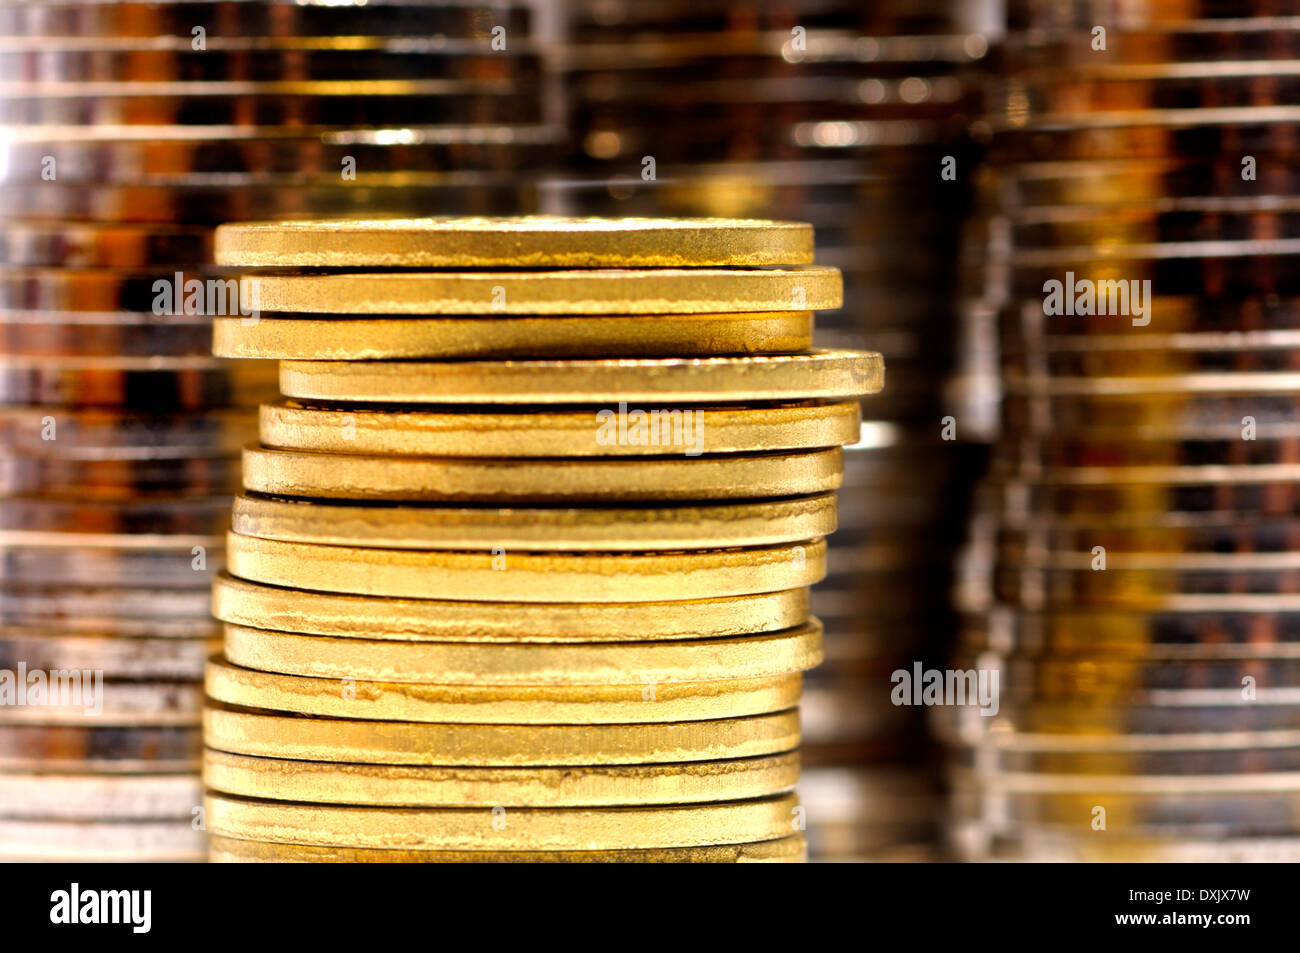 Piles of coins - Stock Image